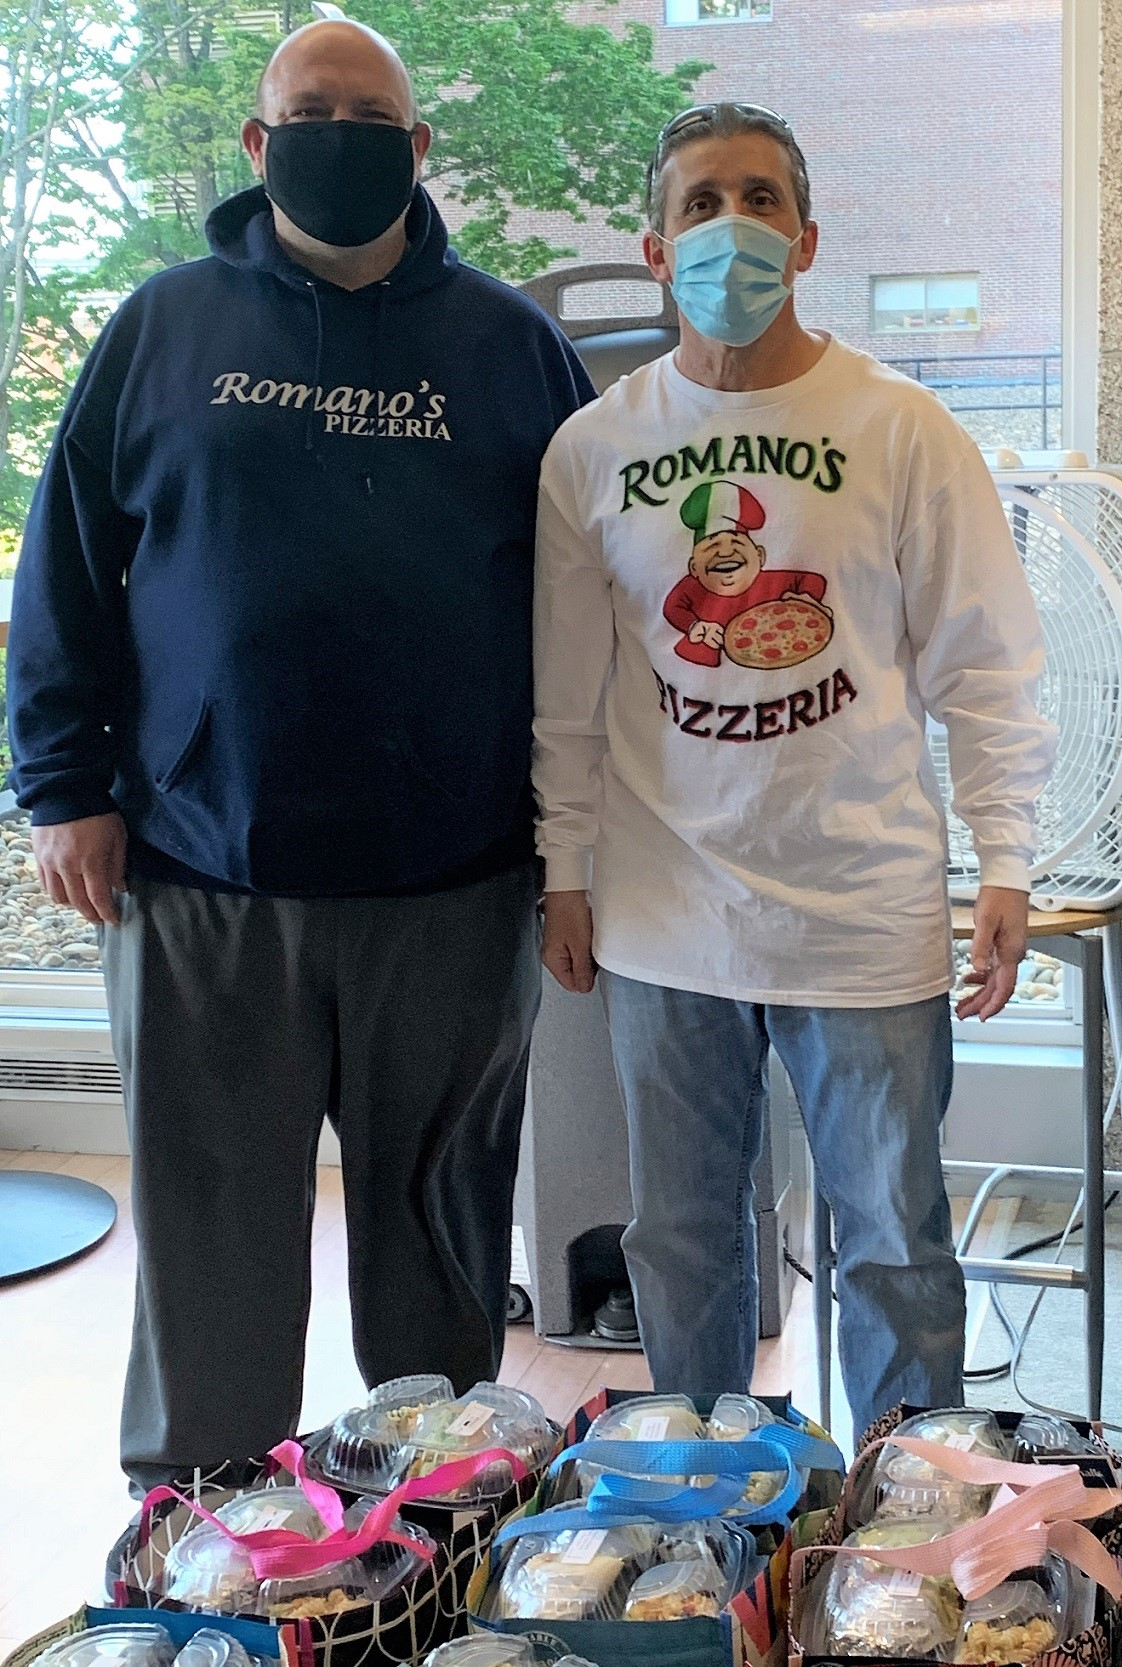 Manny Francisco and Chris Jarbeau, owners of Romano's Pizzeria in Lawrence, deliver meals to Lawrence General Hospital as part of Merrimack Valley Credit Union's 'Feed the Frontline' program.